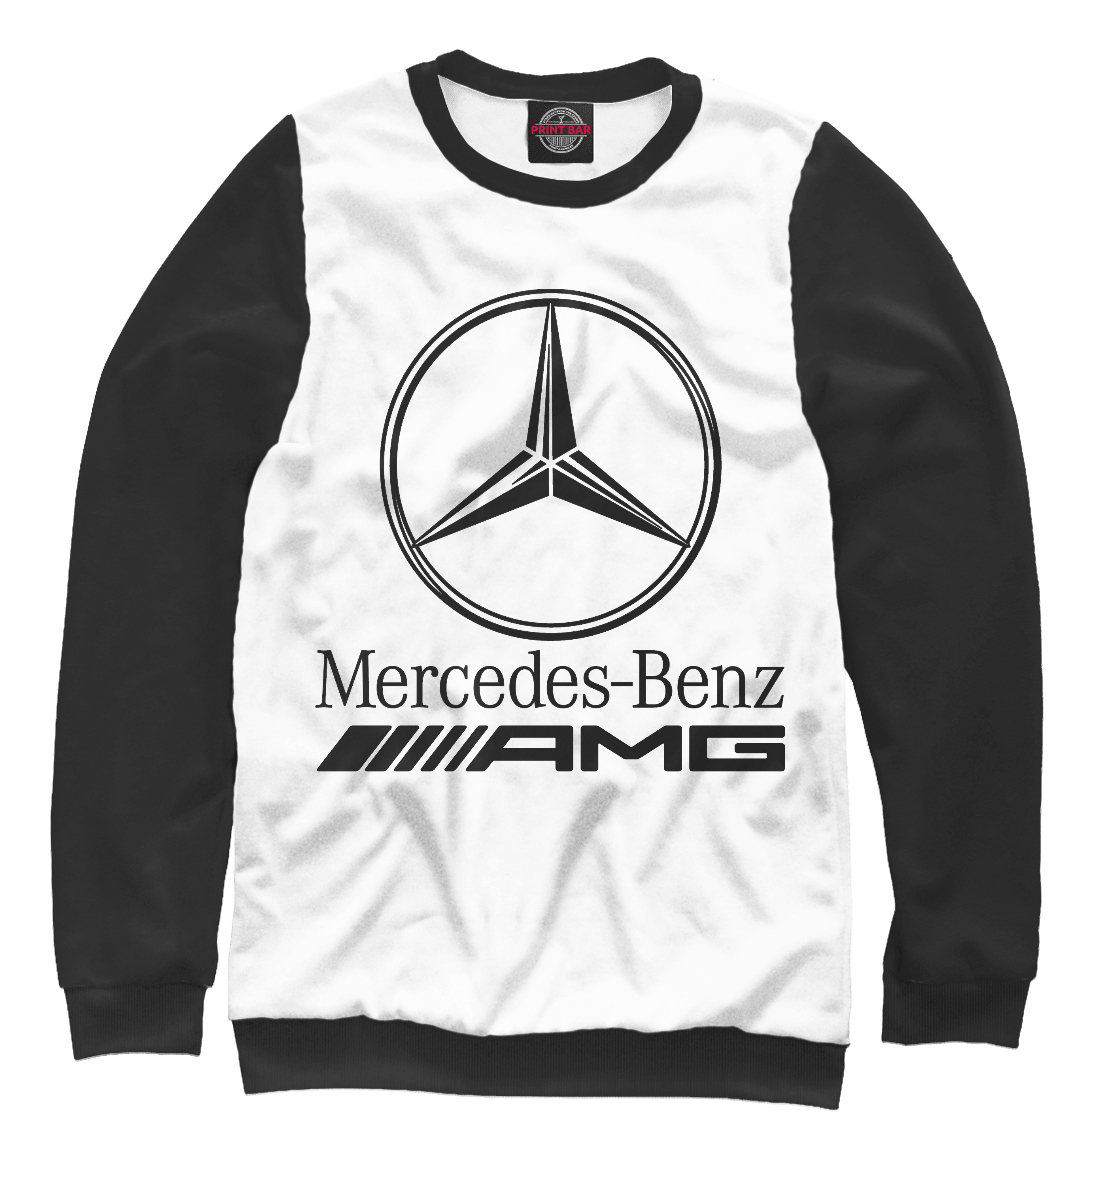 Купить Mercedes-Benz AMG, Printbar, Свитшоты, MER-912174-swi-2